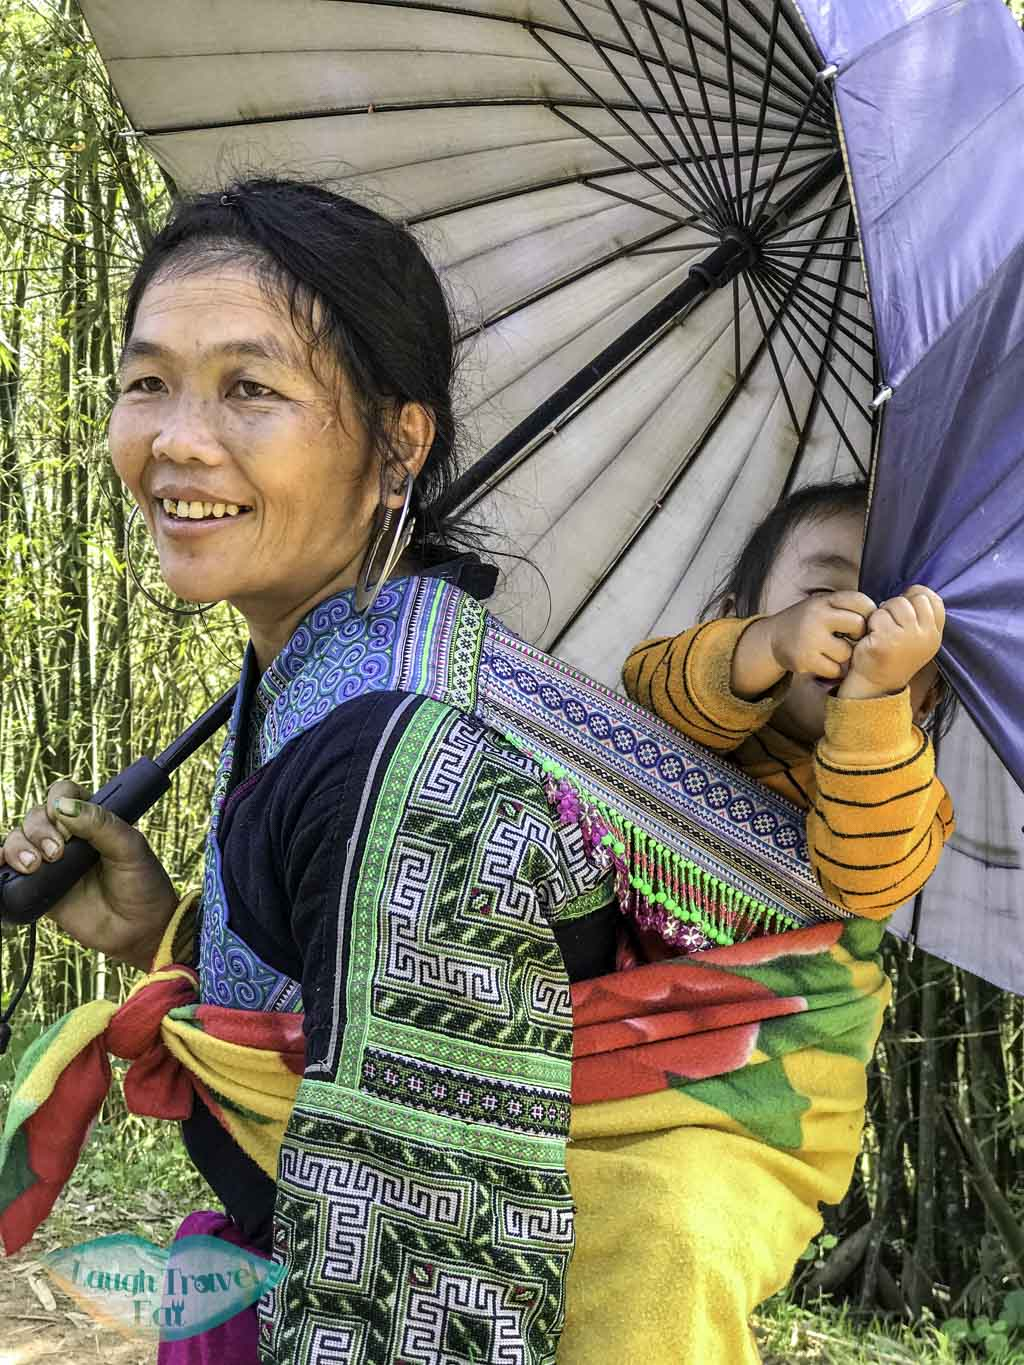 hmong-woman-with-child-sapa-northern-vietnam-laugh-travel-eat